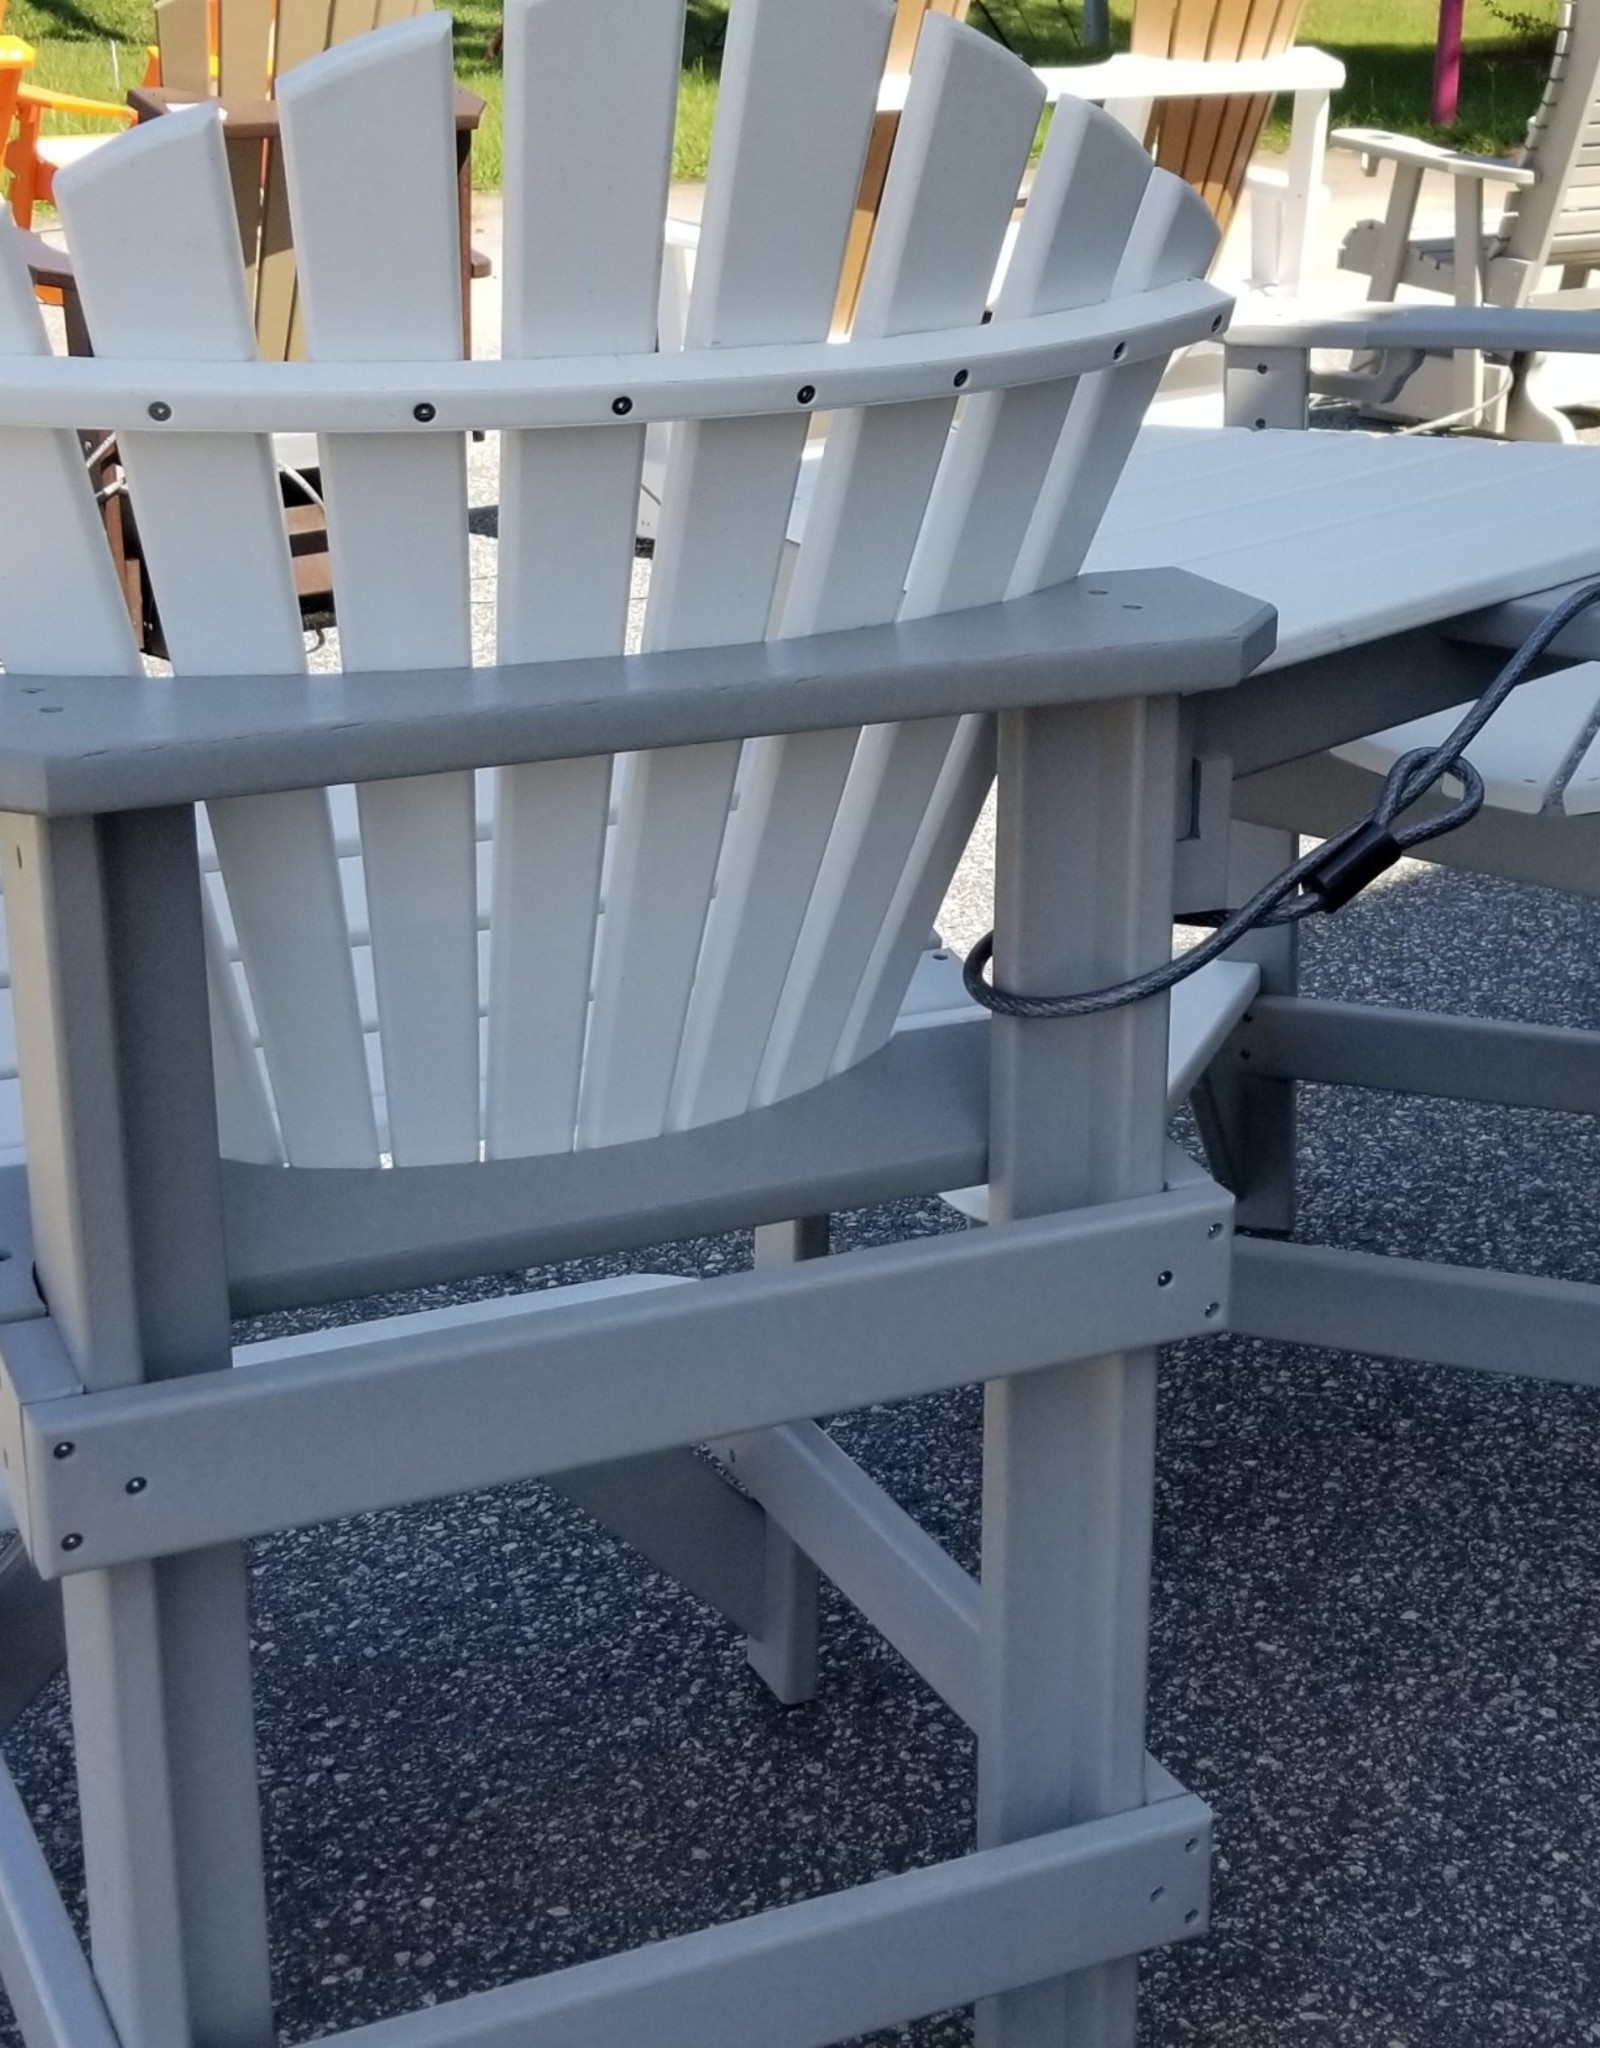 Home Decor Tete-A-Tete 3pc set Pub Table with 2 chairs